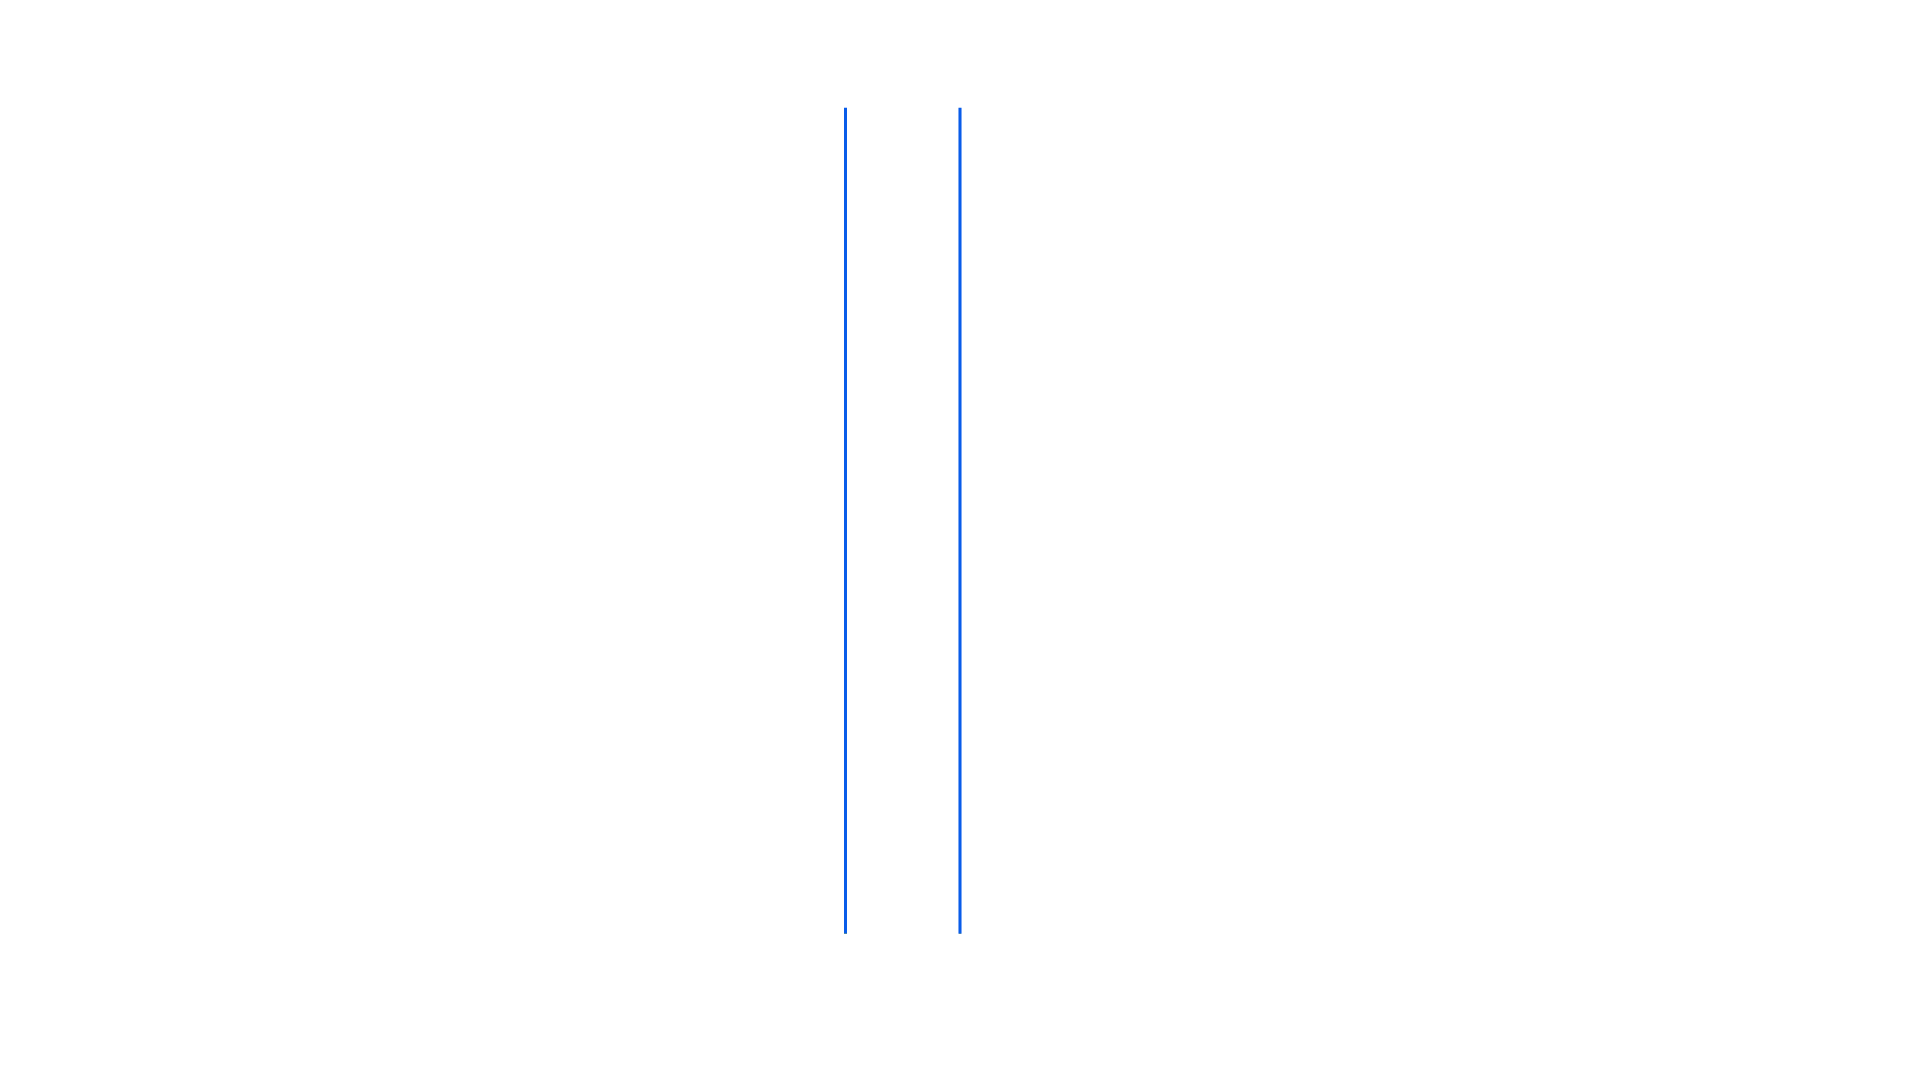 Vertical Line Png 5 » PNG Image #110174.